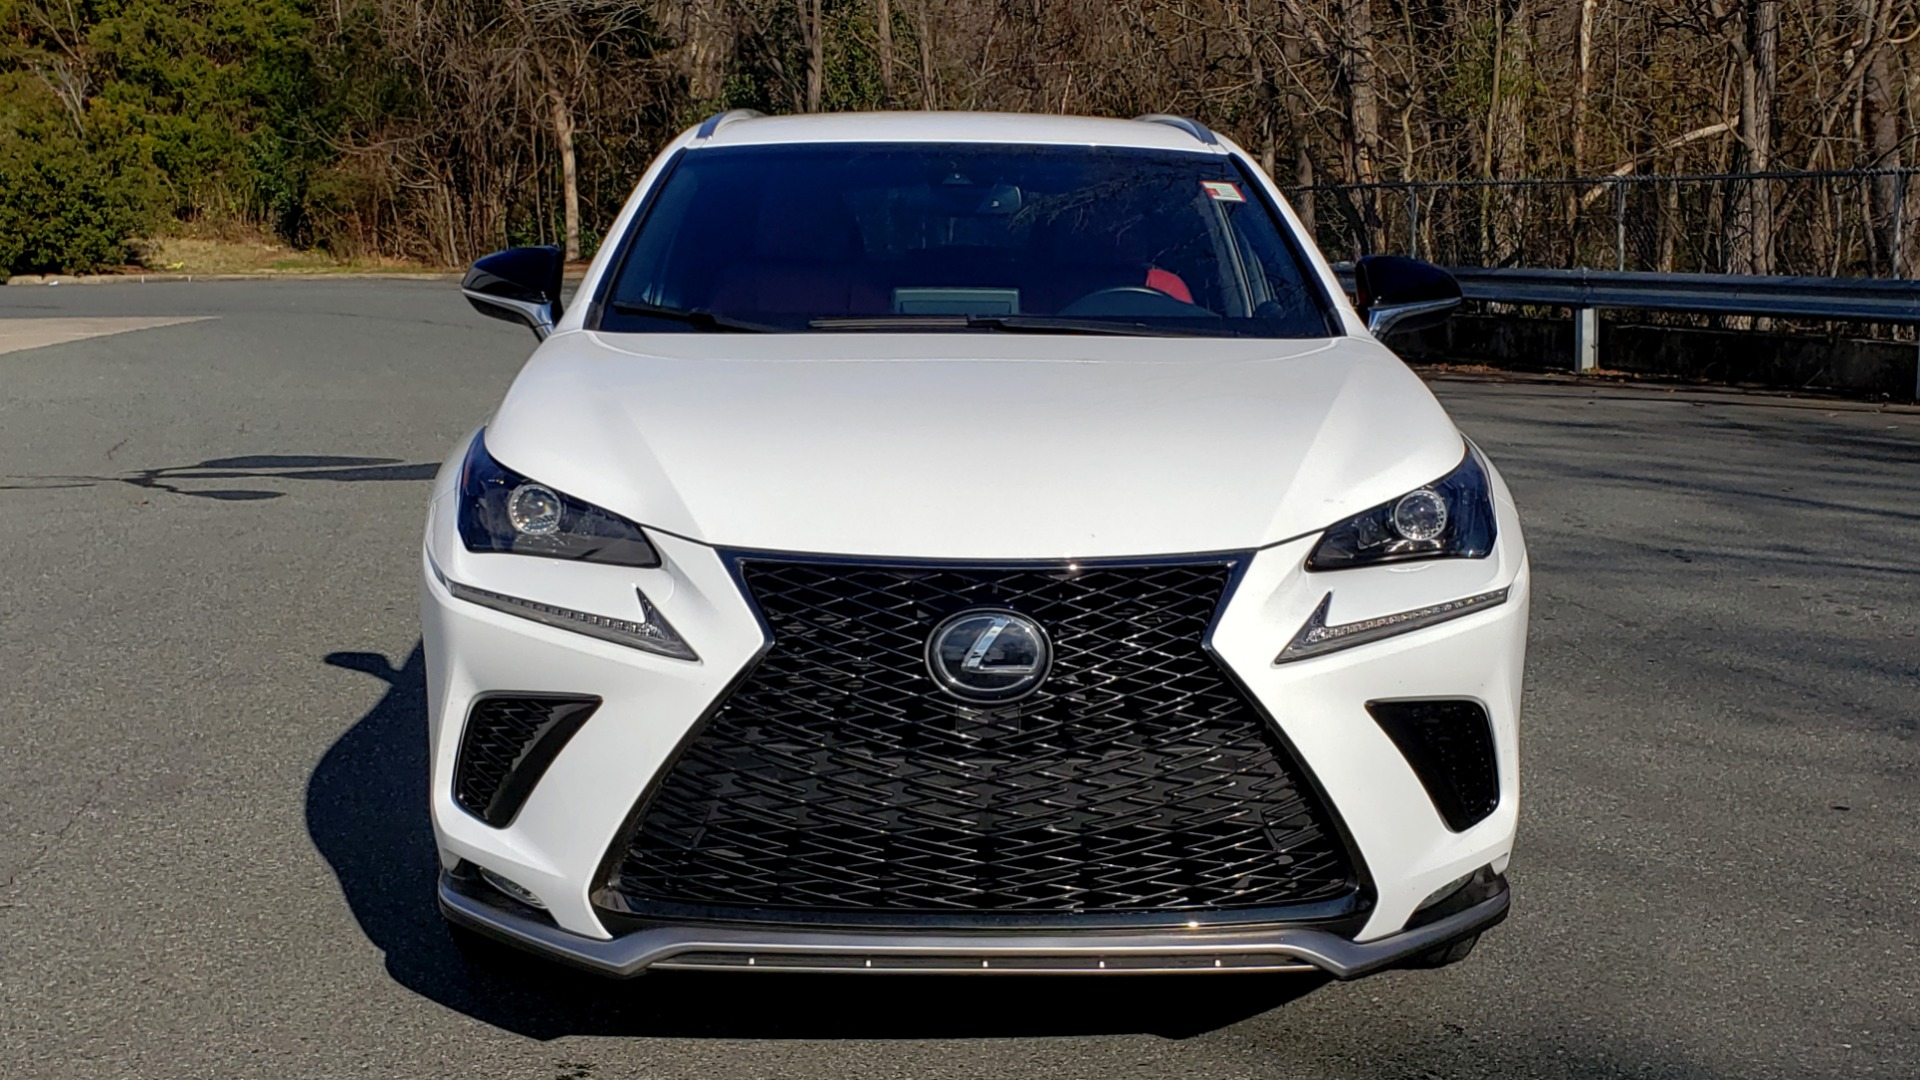 Used 2019 Lexus NX 300 F-SPORT / 2.0L TURBO / LEATHER / 18IN WHEELS / REARVIEW for sale Sold at Formula Imports in Charlotte NC 28227 25